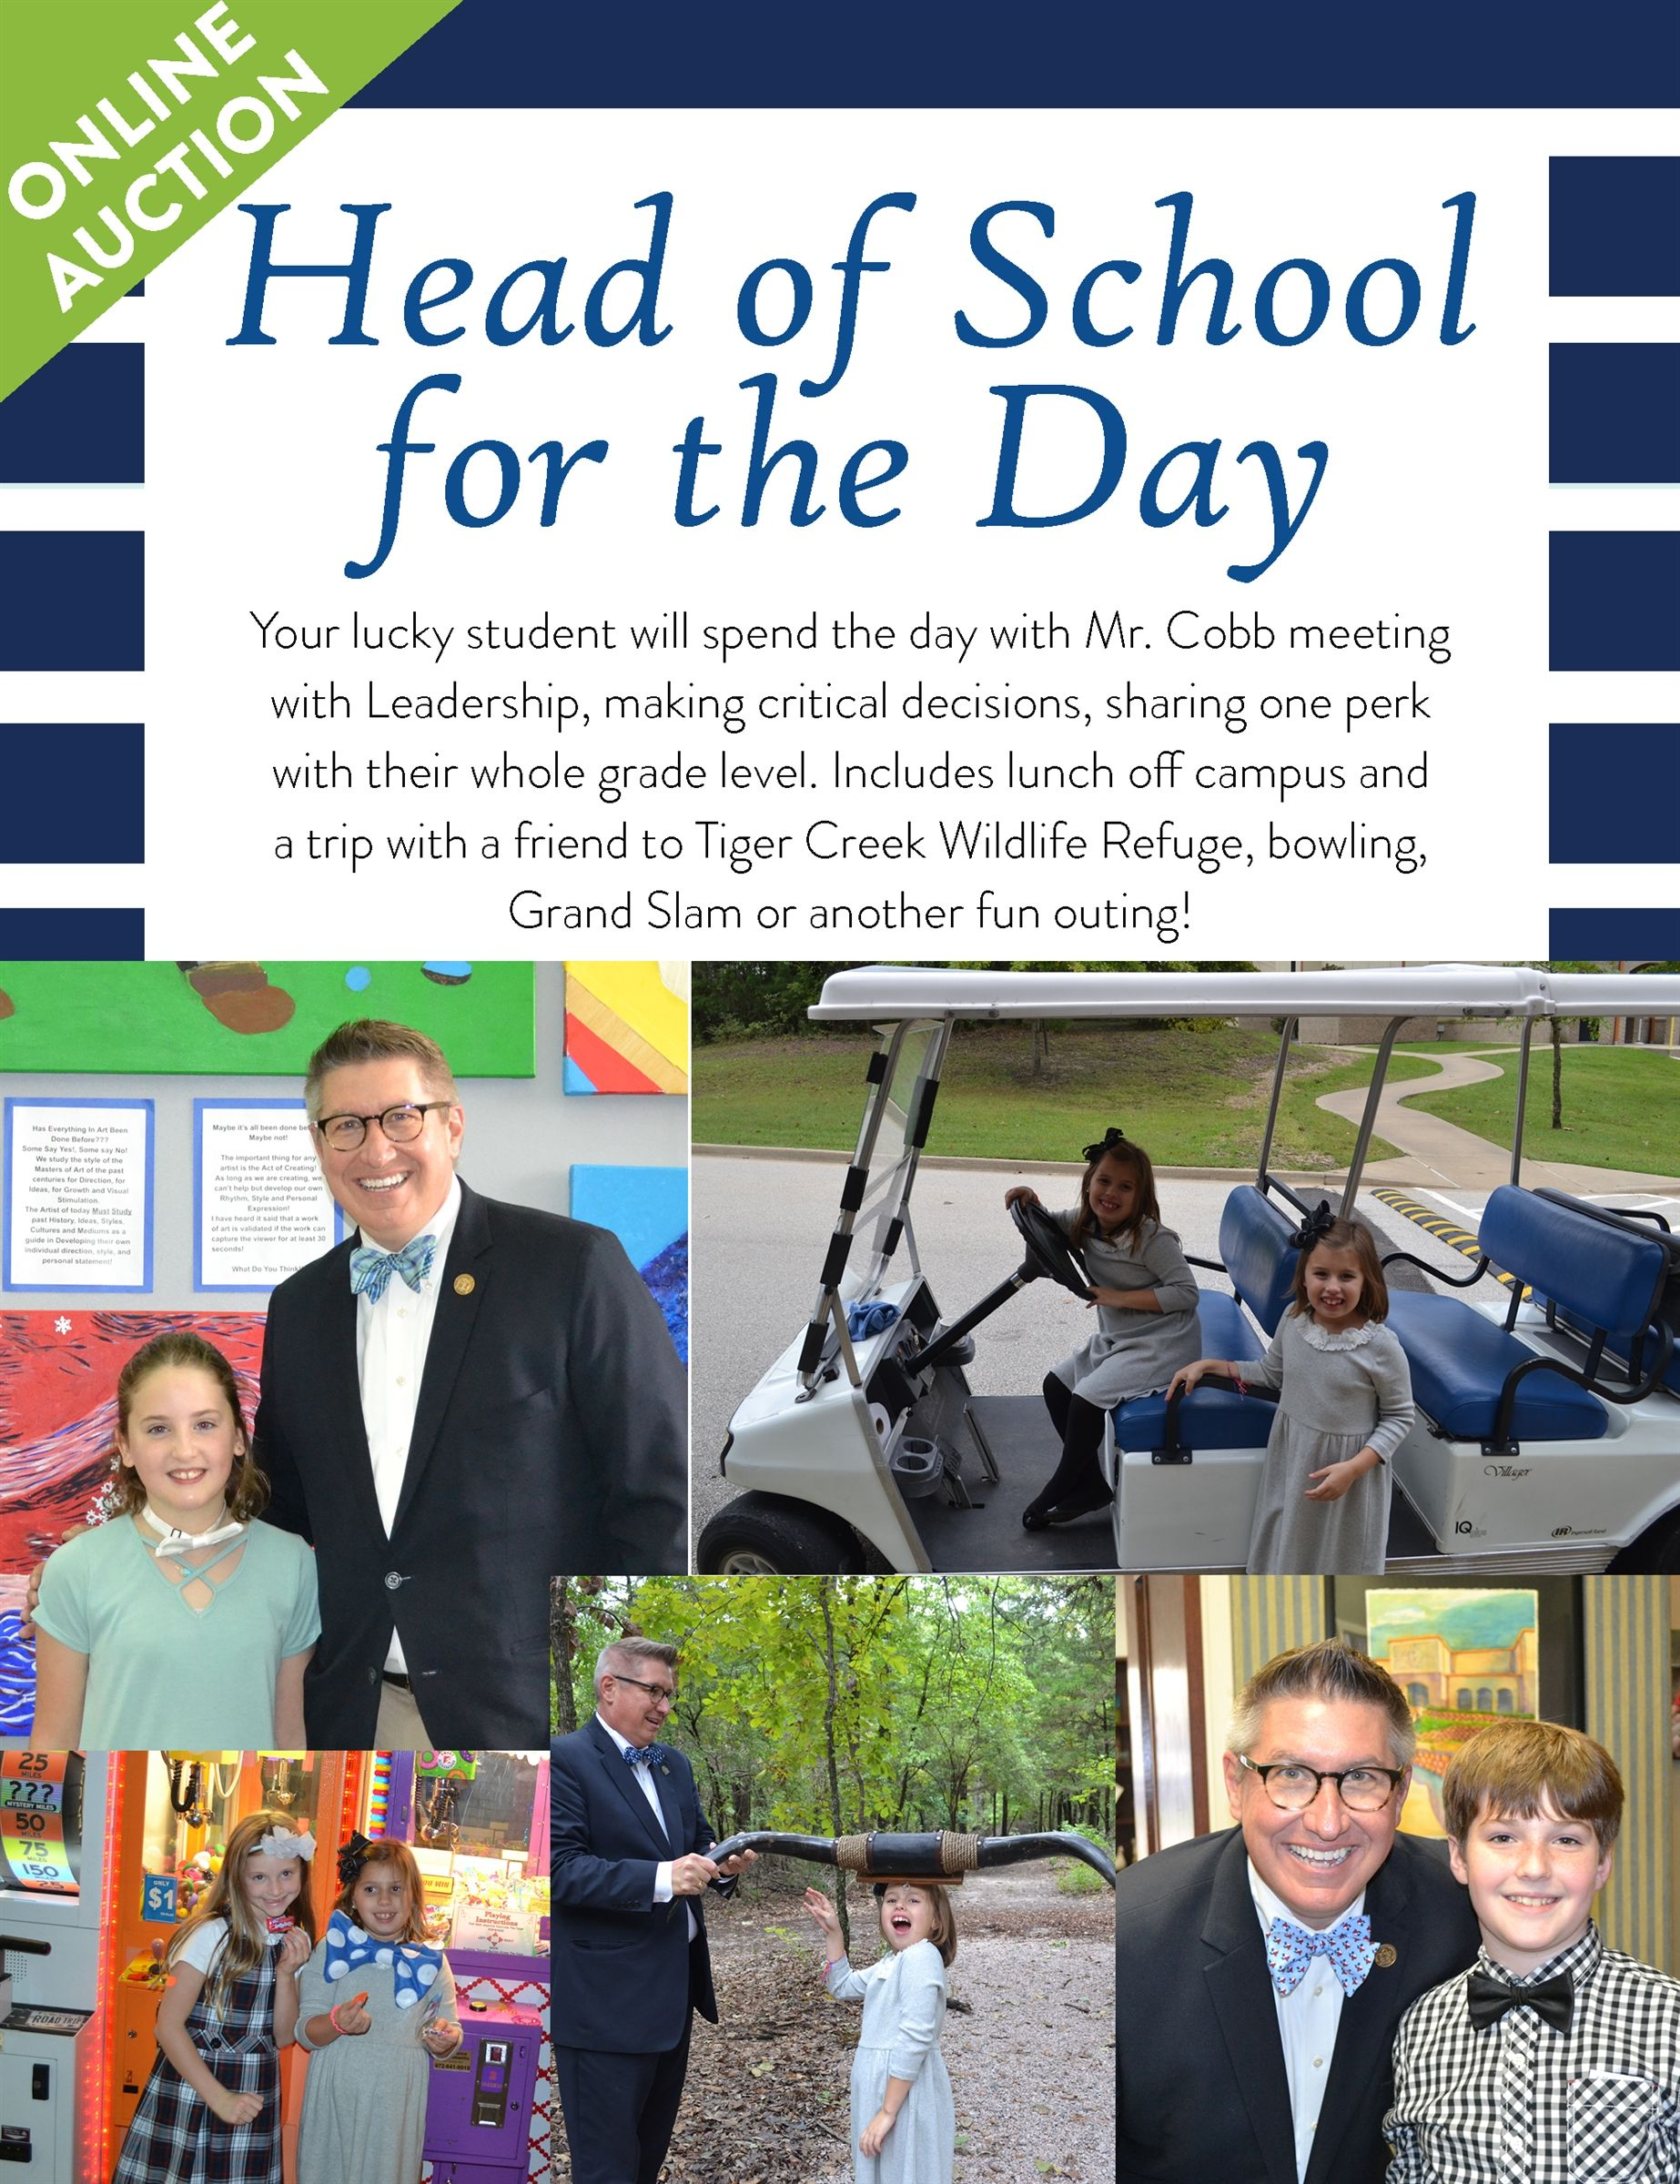 Head of School for a Day